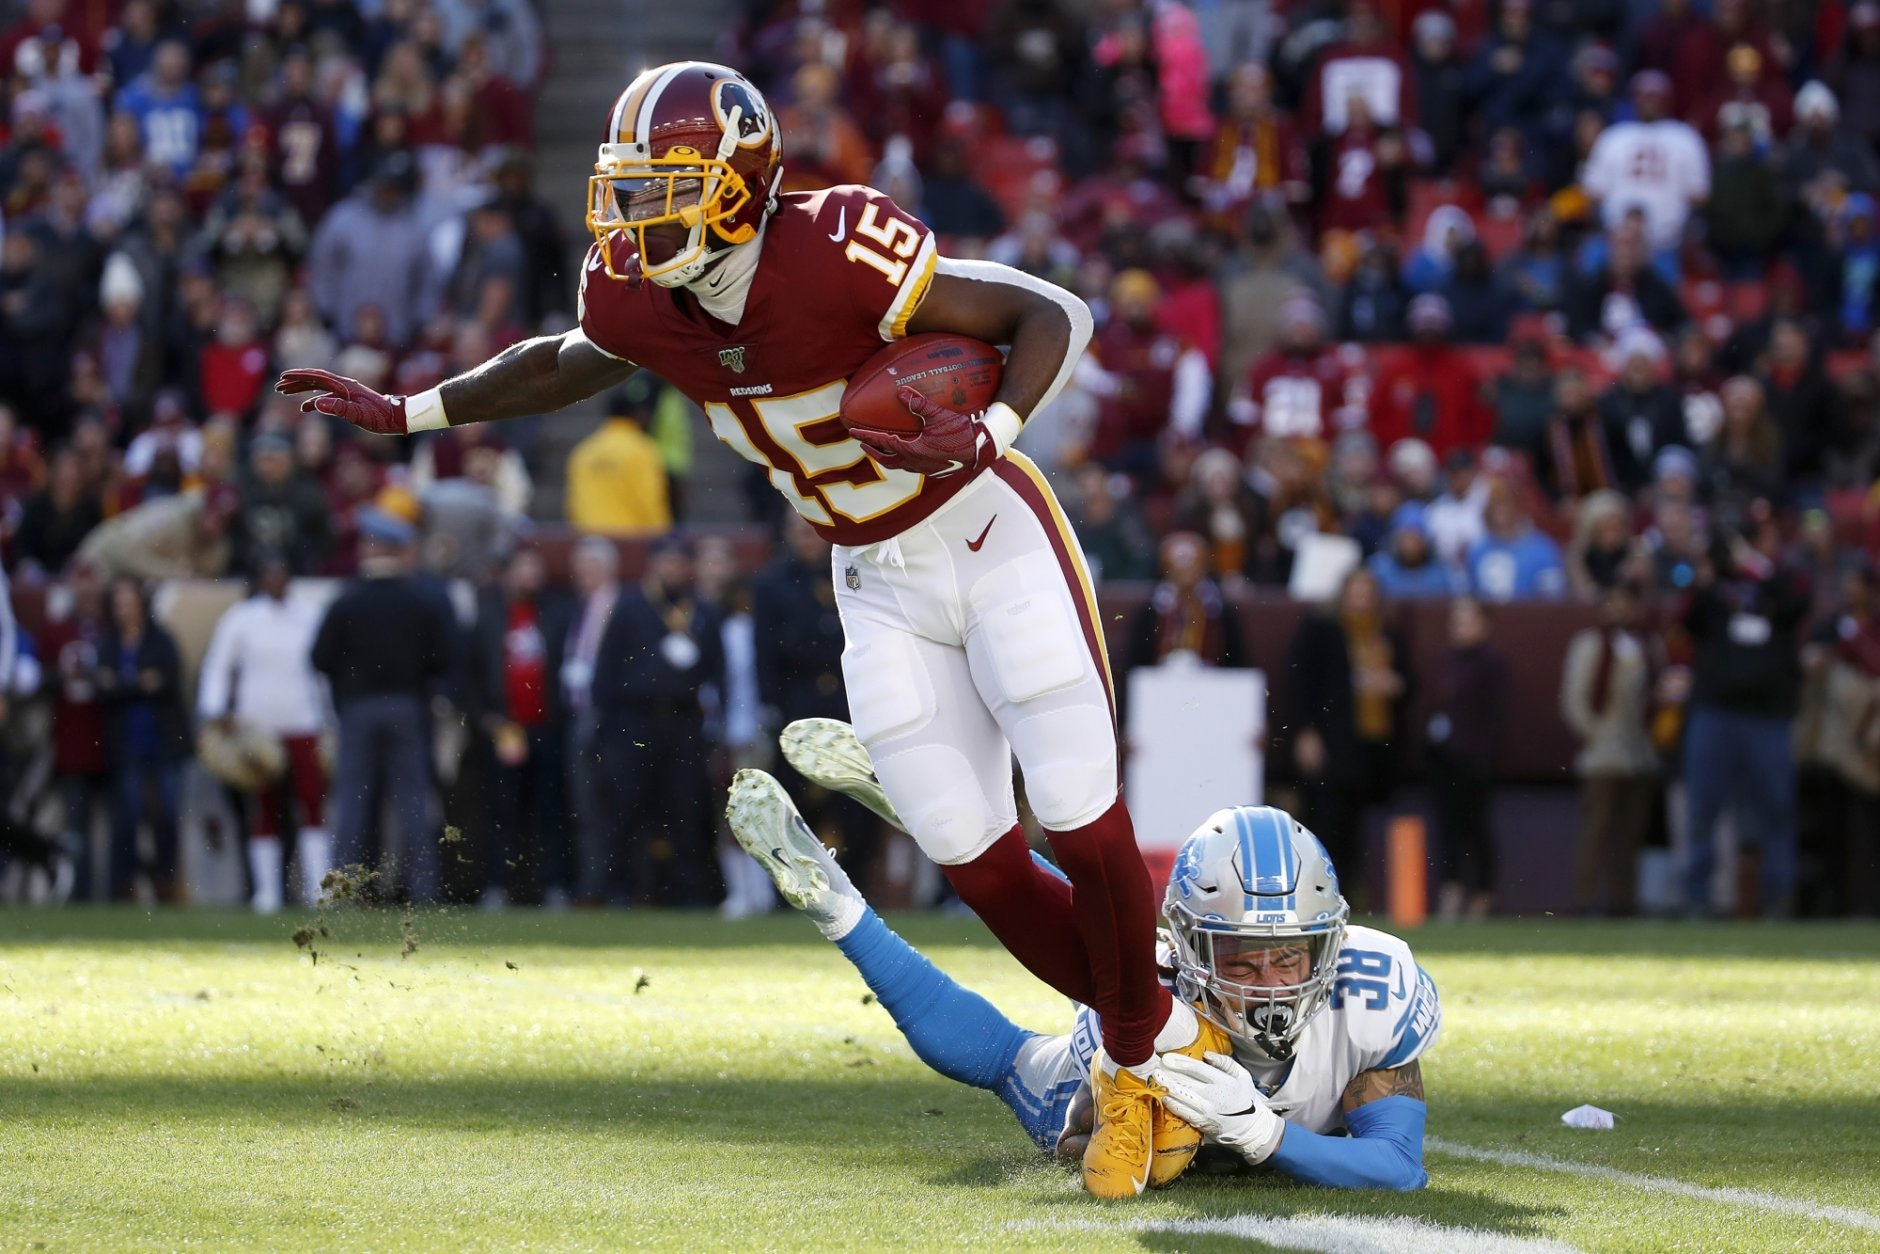 Redskins Come Back To Beat Lions Haskins Misses Final Snap Wtop